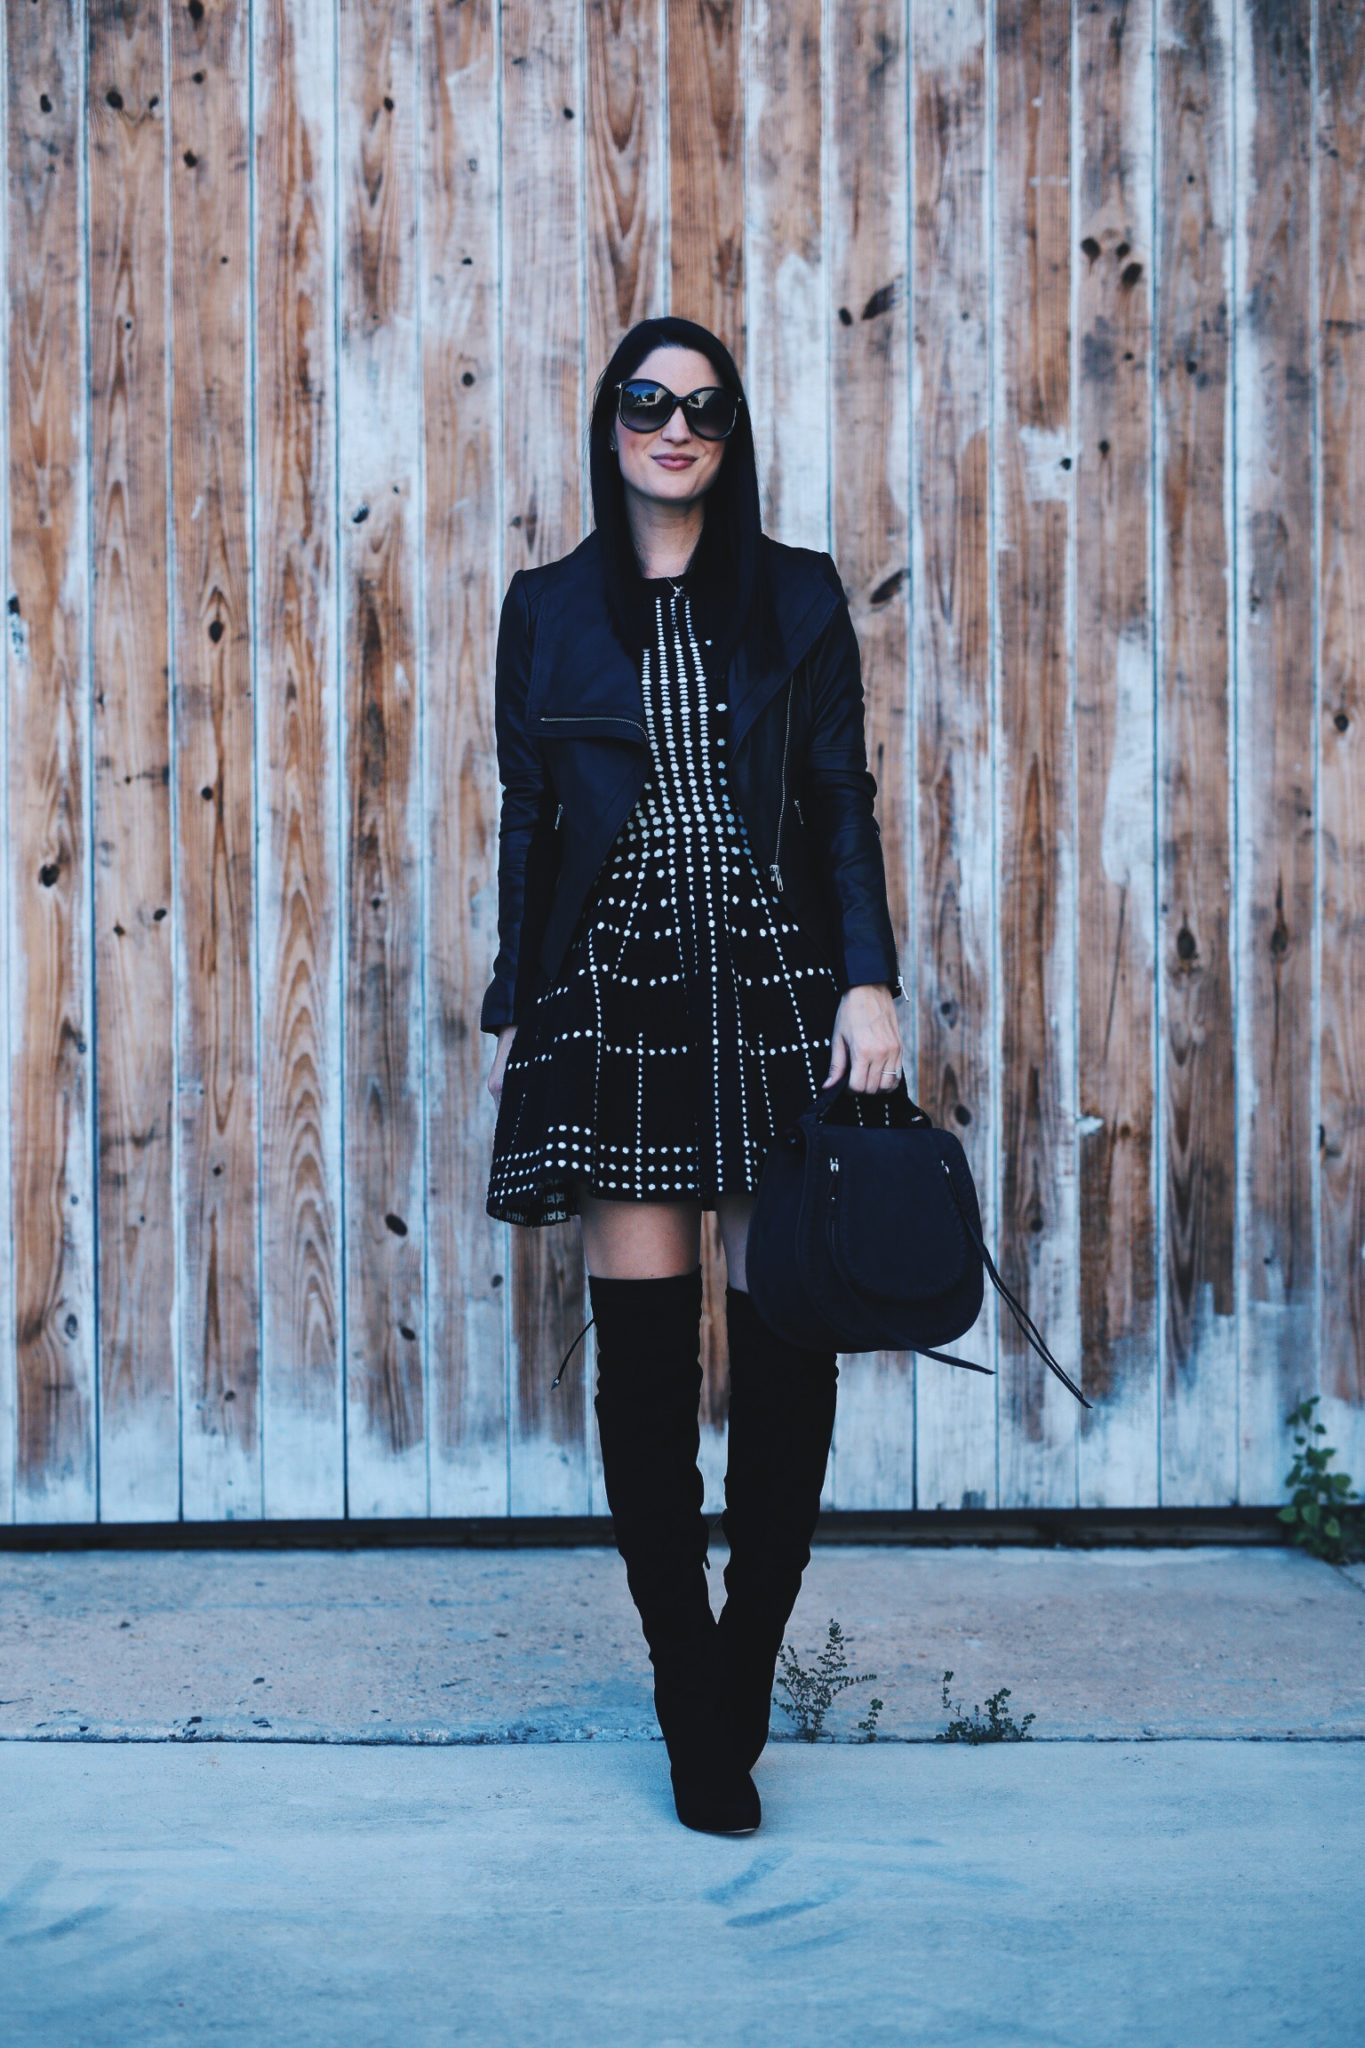 Fit and Flare Knit Dress and Over the Knee Boots | how to style a fit and flare dress | how to wear a fit and flare dress | fit and flare dress style tips | fall fashion tips | fall outfit ideas | fall style tips | what to wear for fall | cool weather fashion | fashion for fall | style tips for fall | outfit ideas for fall || Dressed to Kill